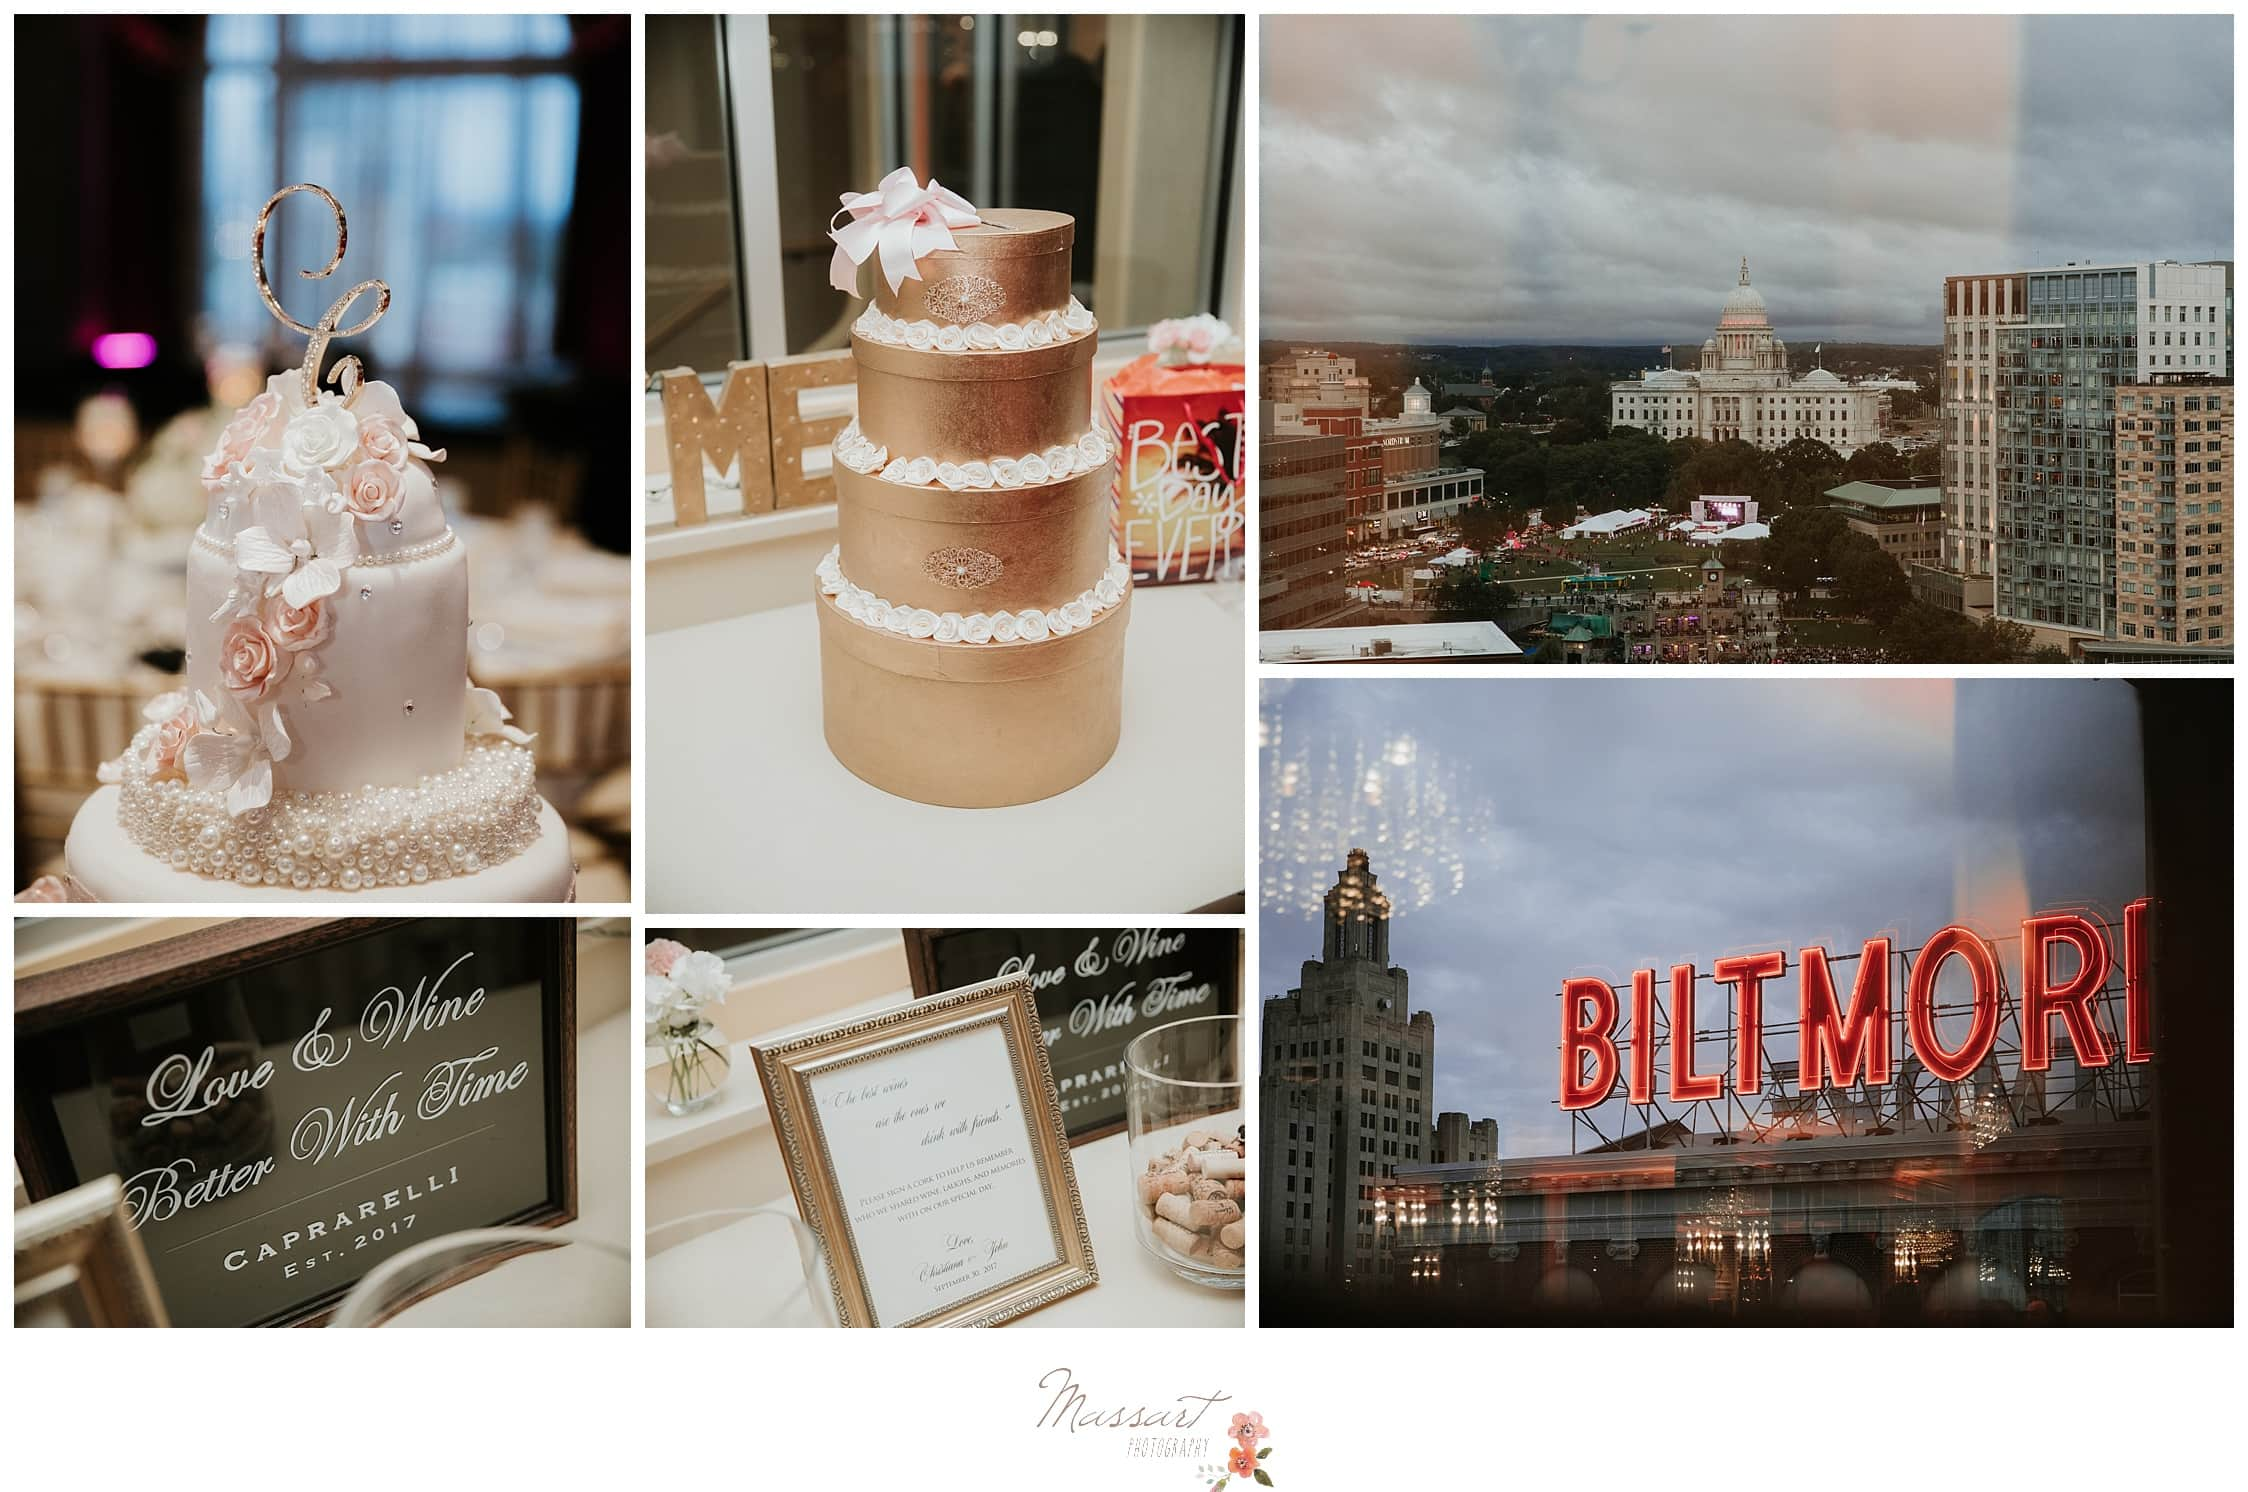 Detail portraits of the reception decor, cake and the Biltmore sign photographed by Massart Photography Rhode Island